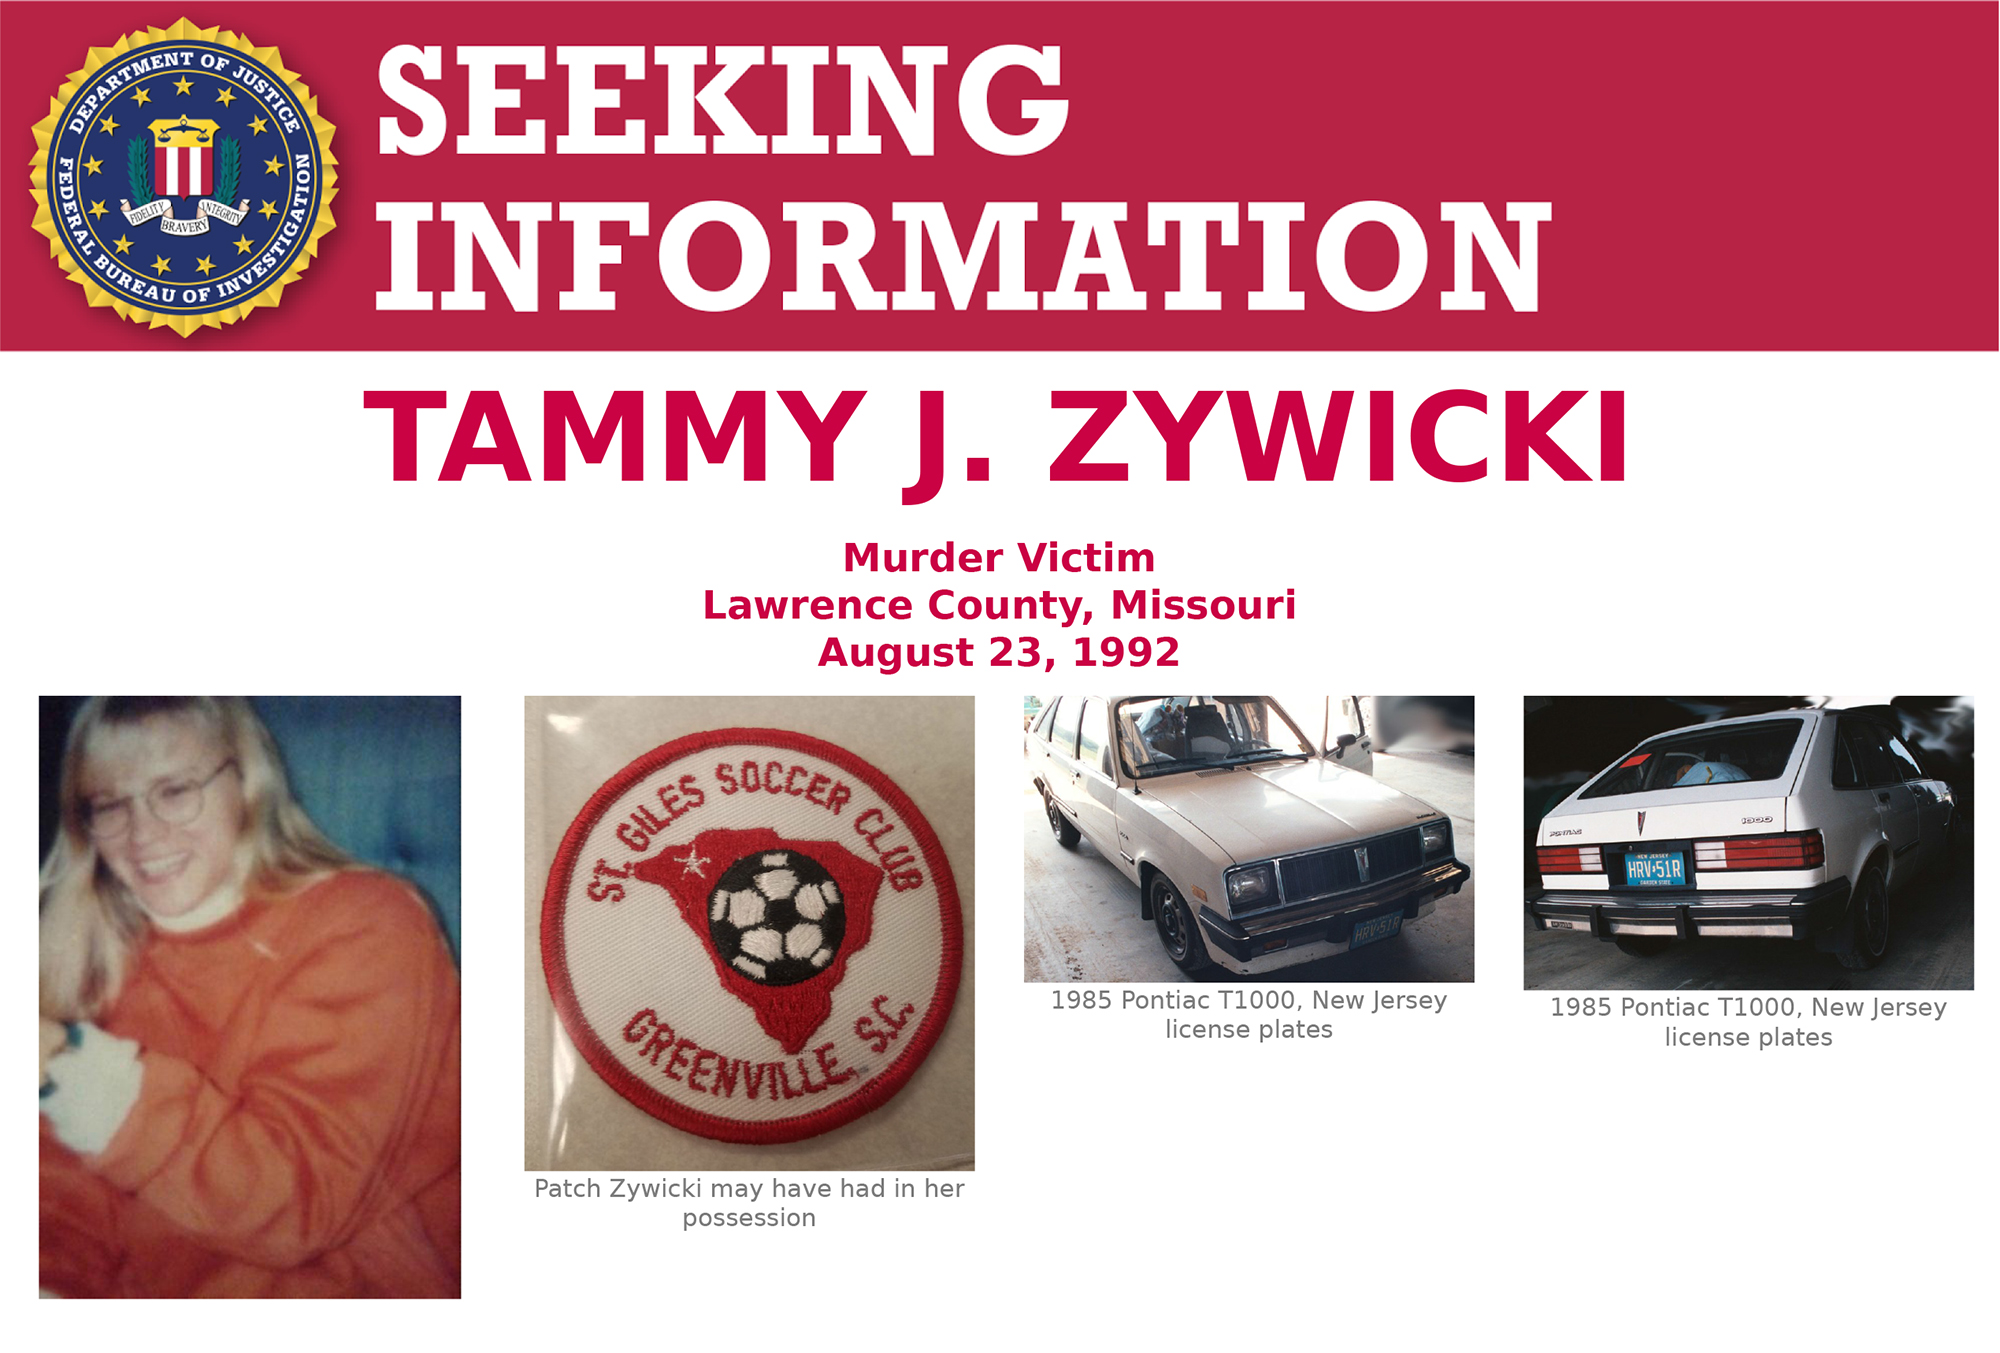 Screenshot showing top part of Tammy Zywicki's Seeking Information poster. Zywicki was murdered August 23, 1992, and the case remains unsolved 25 years later.